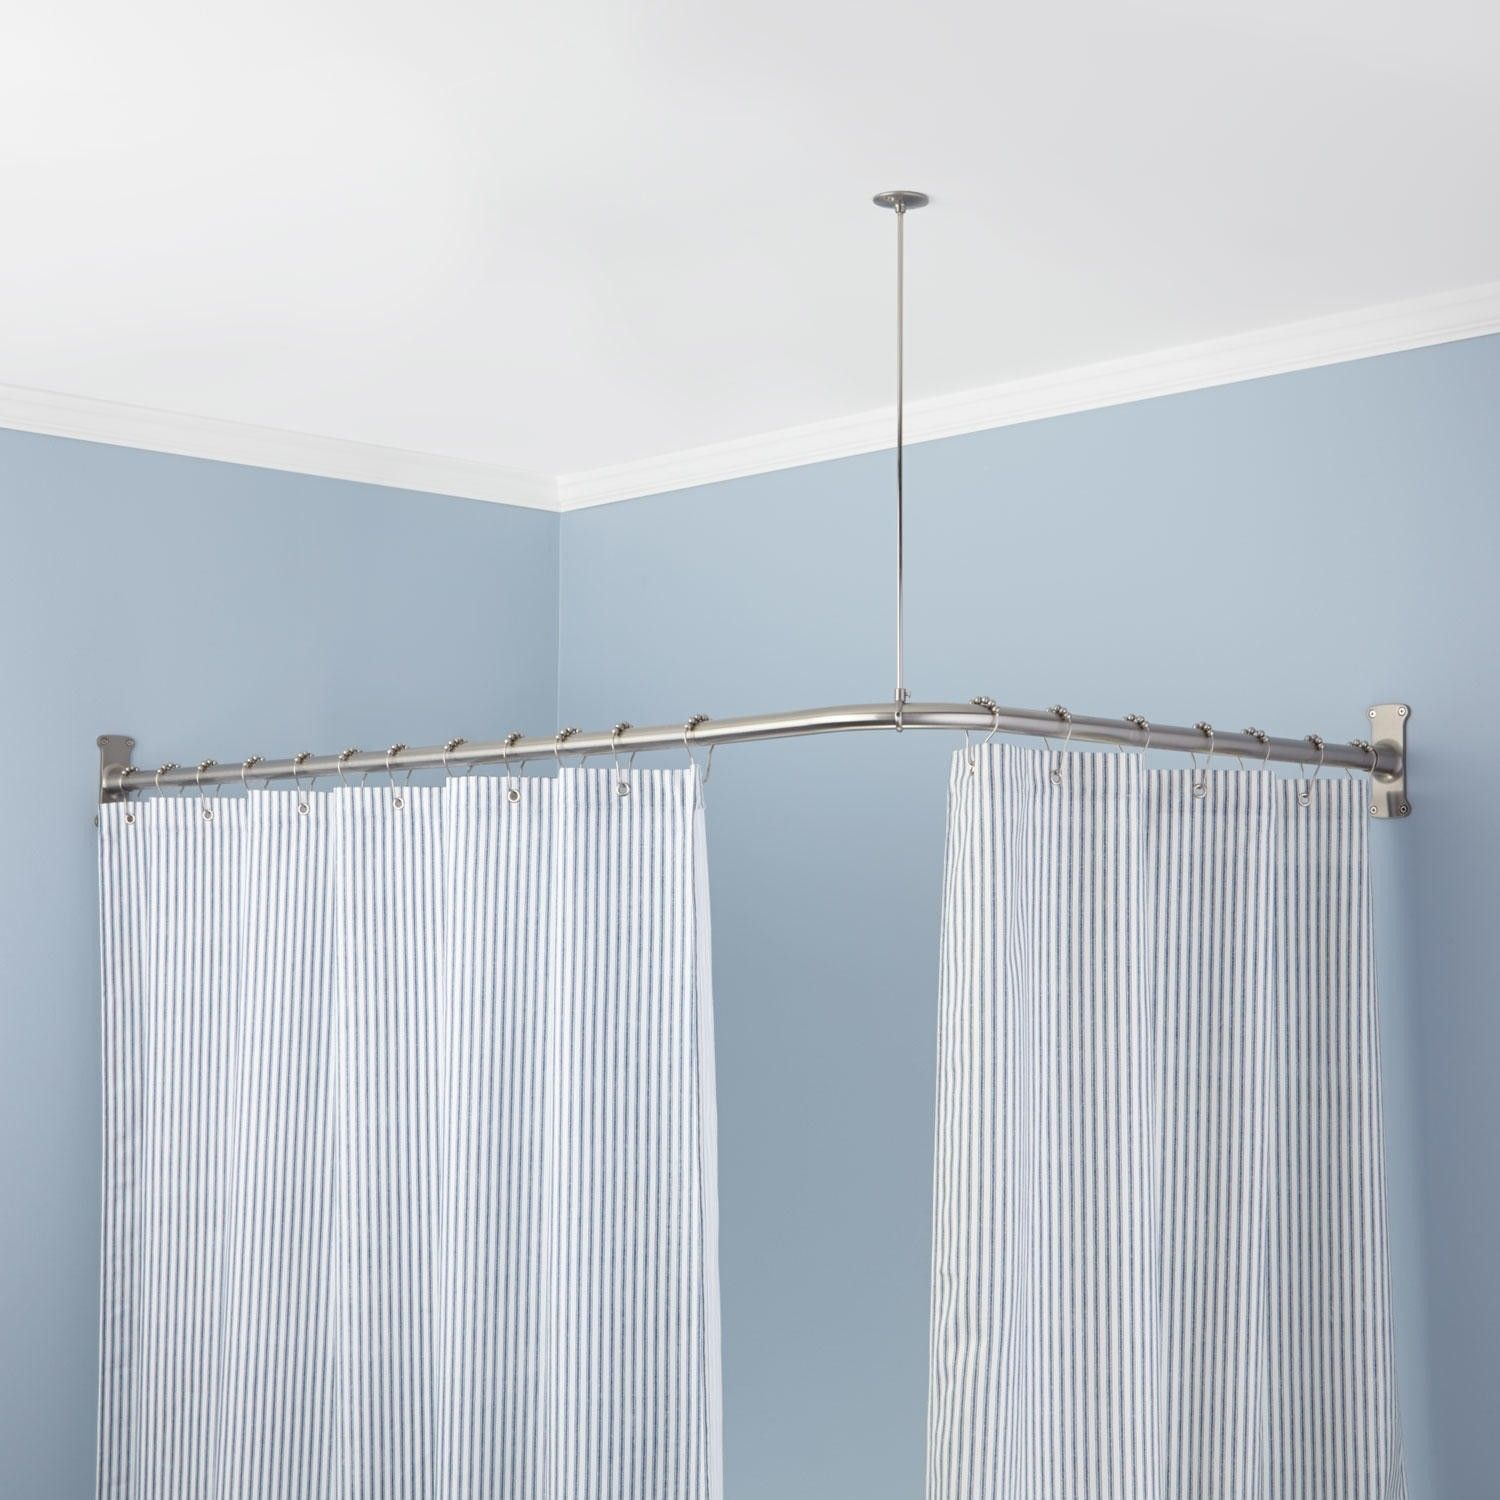 Stand Up Shower Curtain Rod | Home sweet home | Pinterest | Shower ...